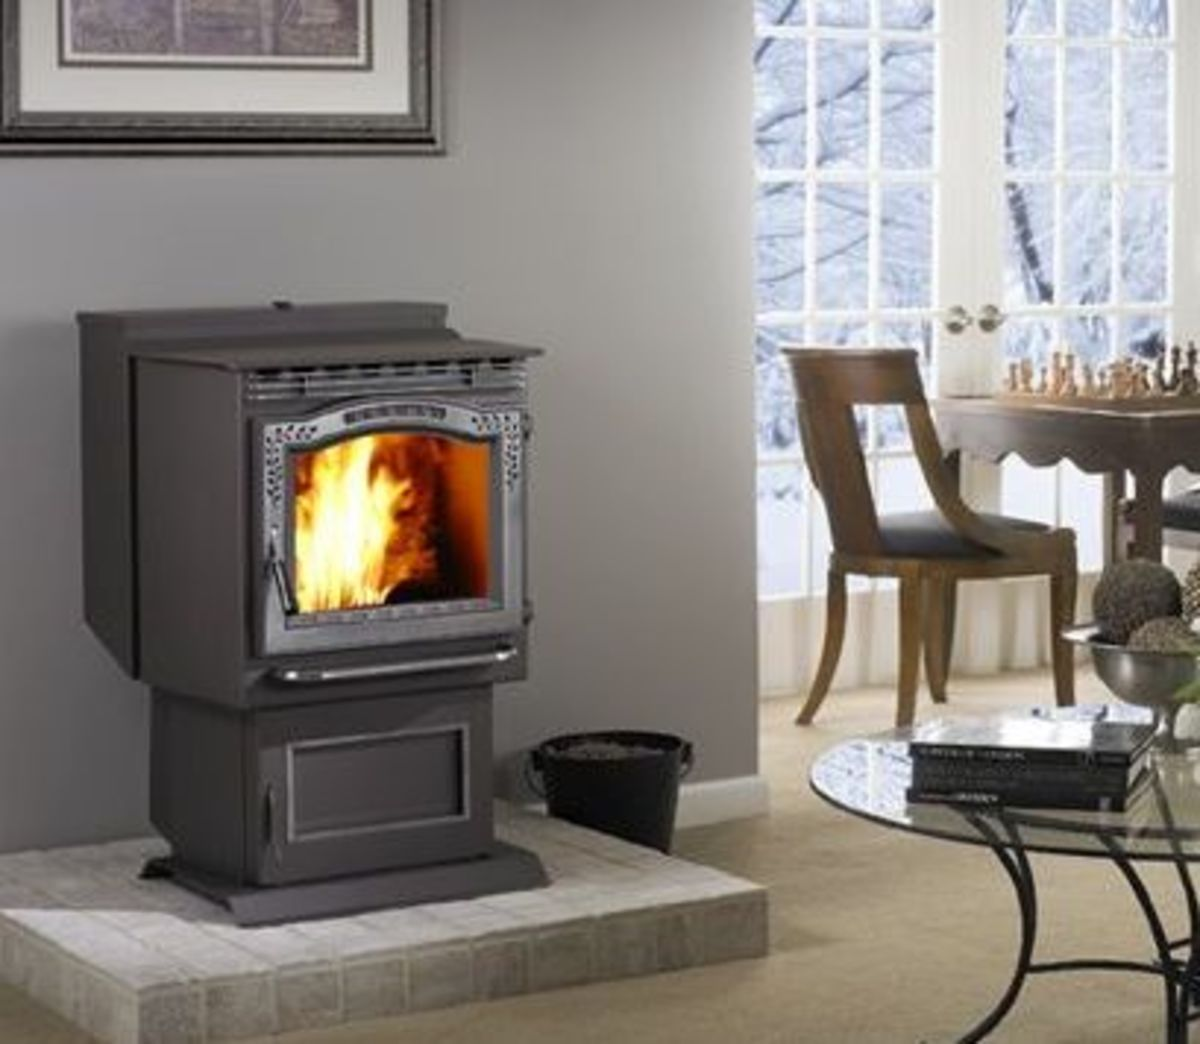 A Harman Stove, the P68 Pellet Stove can easily heat a 2,000+ sq.-ft. home with up to 68,000 BTUs of heat.